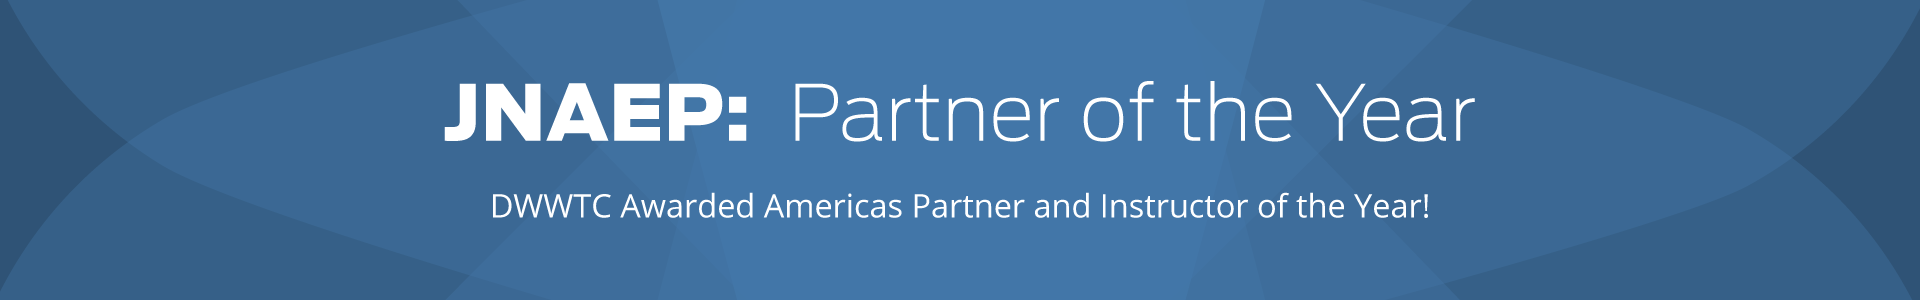 DWWTC WINS JNAEP AMERICAS: PARTNER OF THE YEAR!